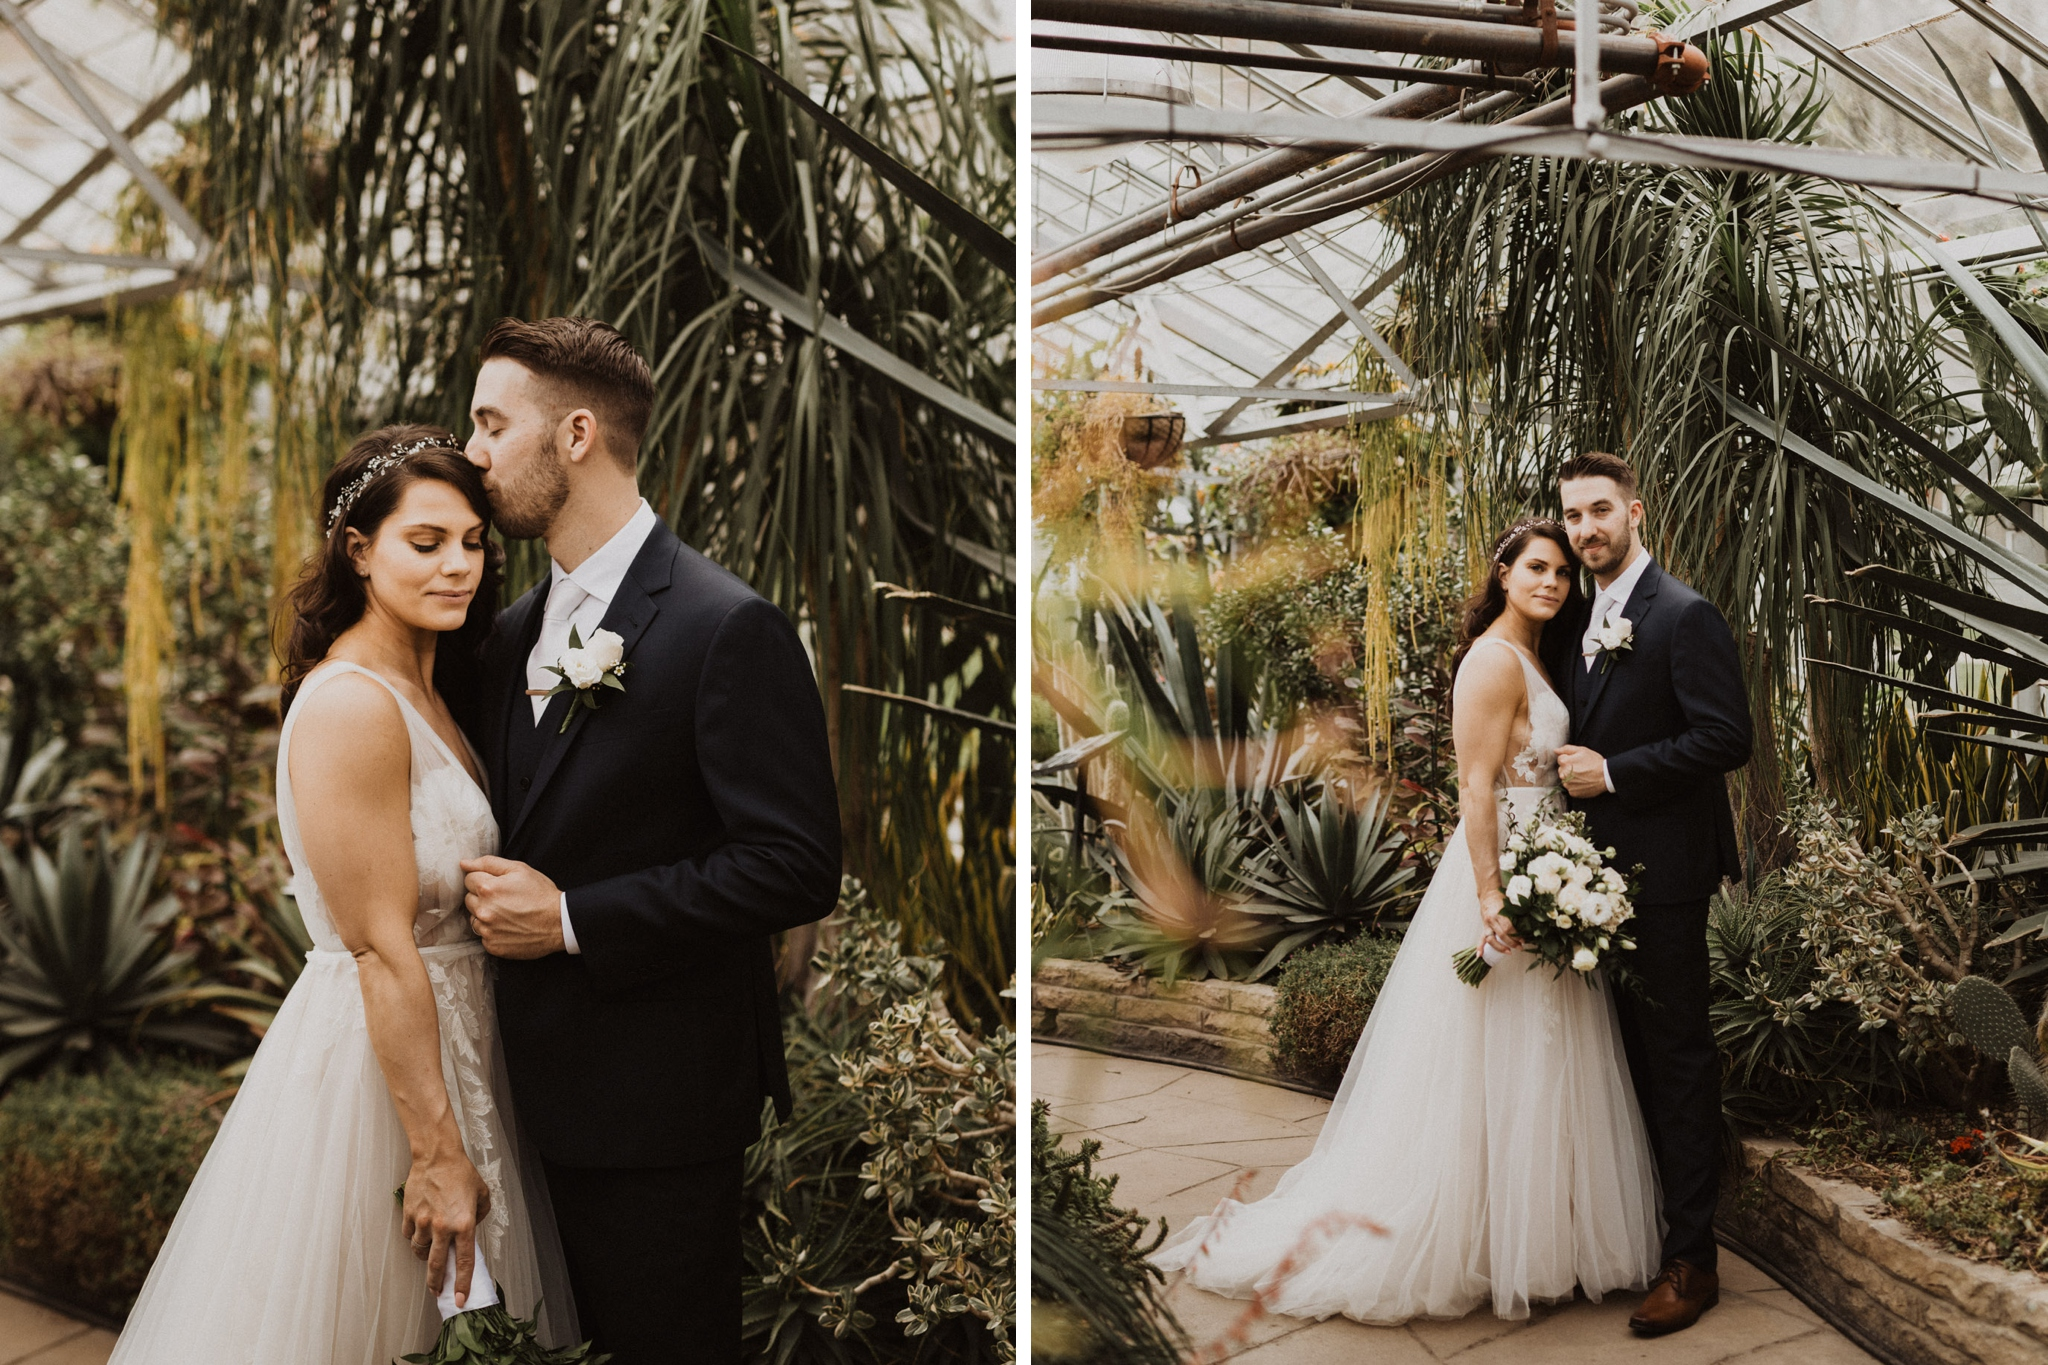 Greenhouse Elopement Allan Gardens Toronto - bride and groom portraits